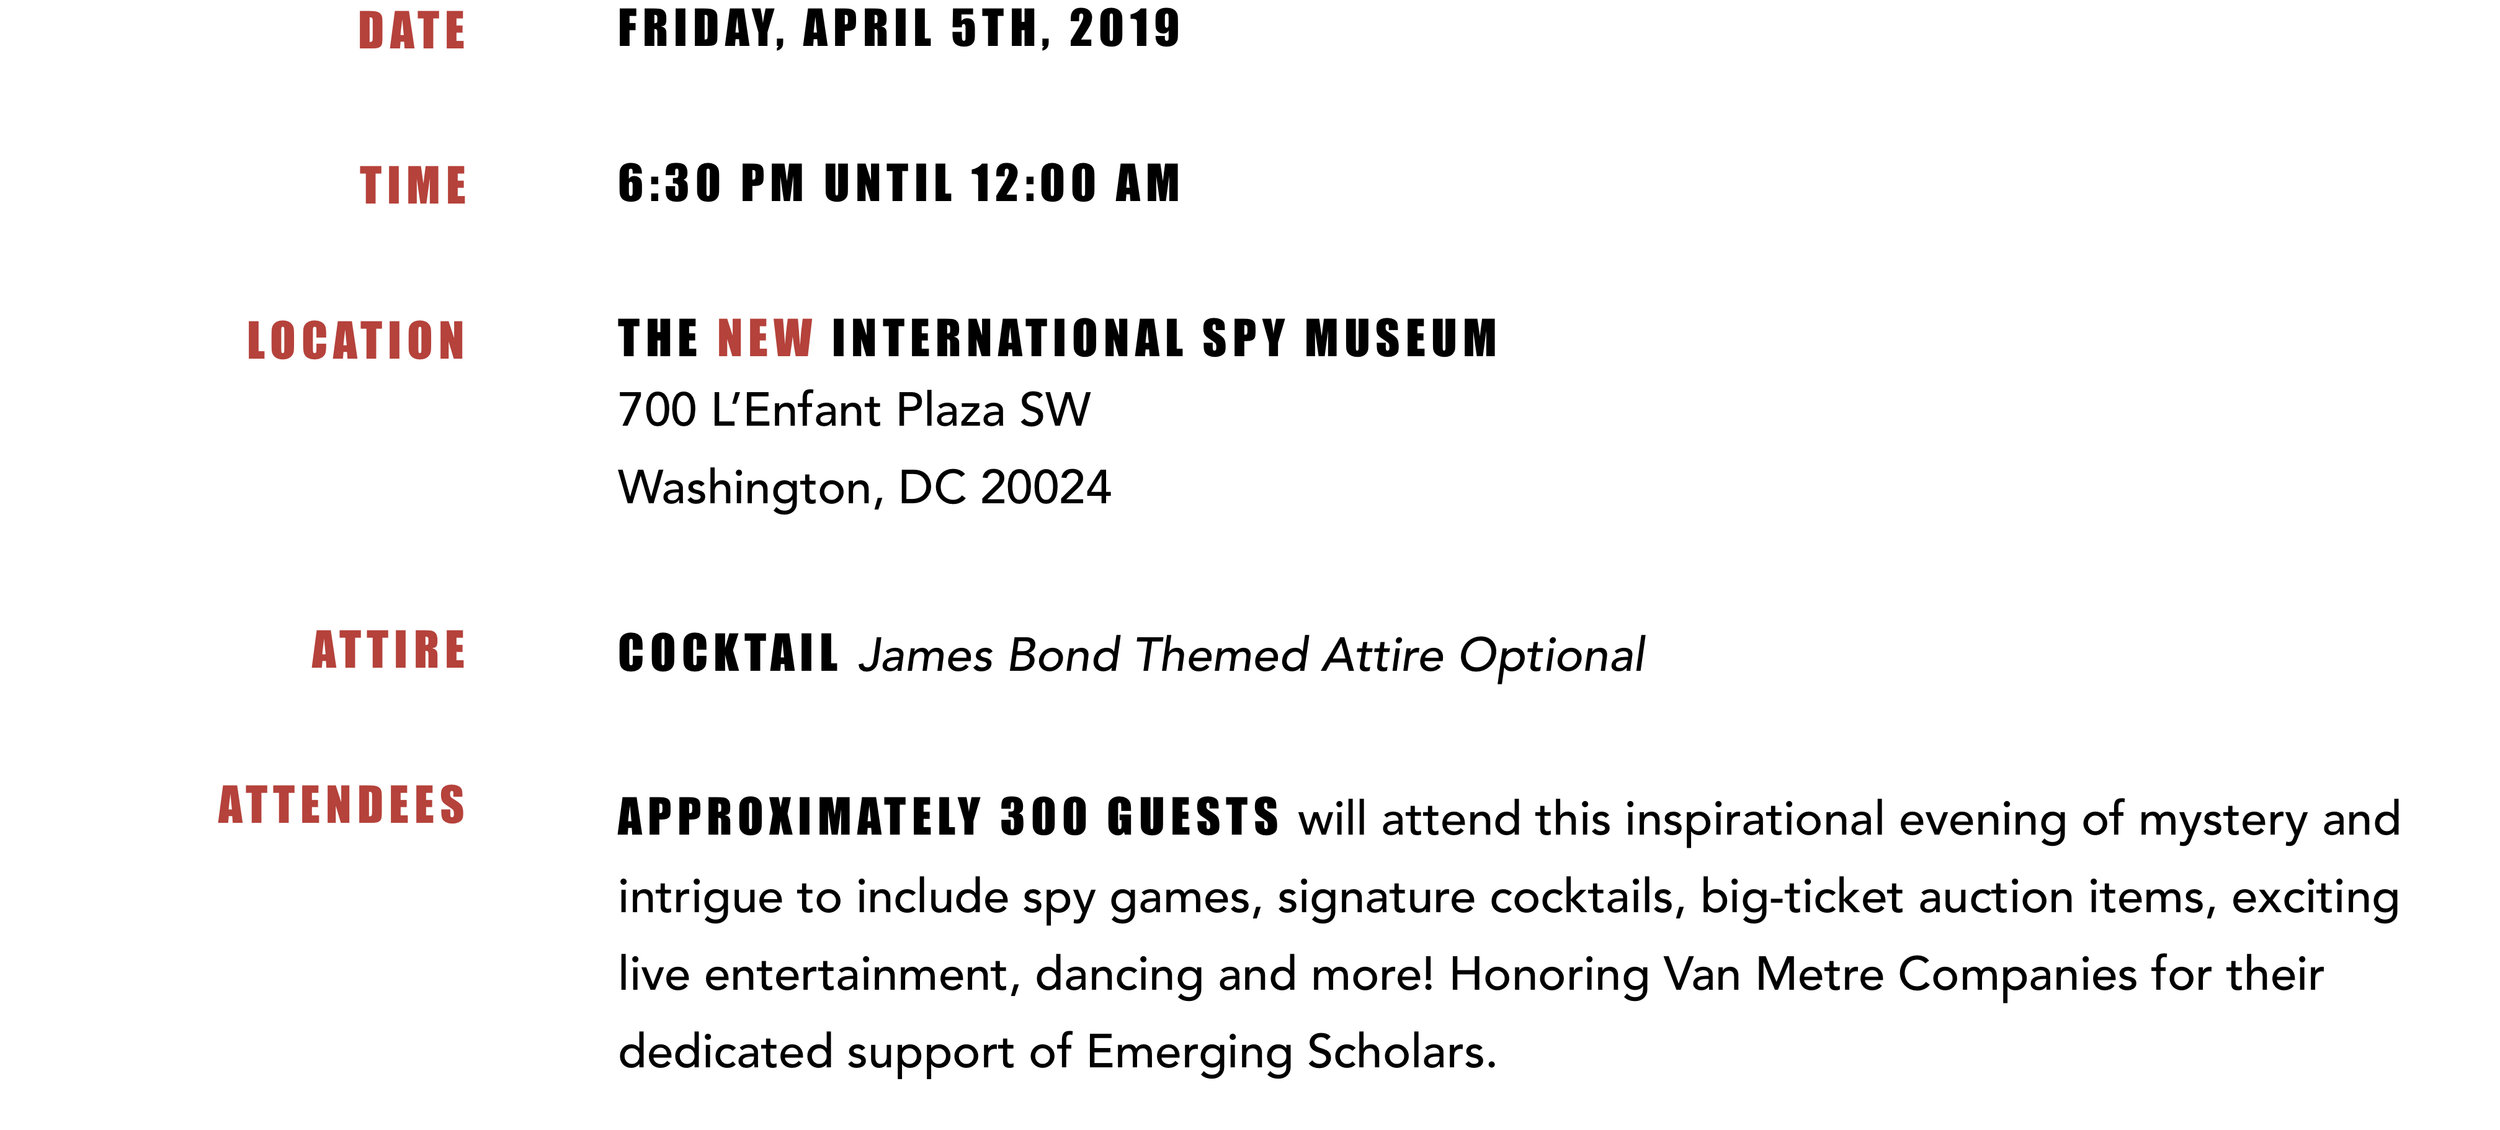 007th Annual Gala-Sponsorship WEBPAGE INFO 2 copy.jpg